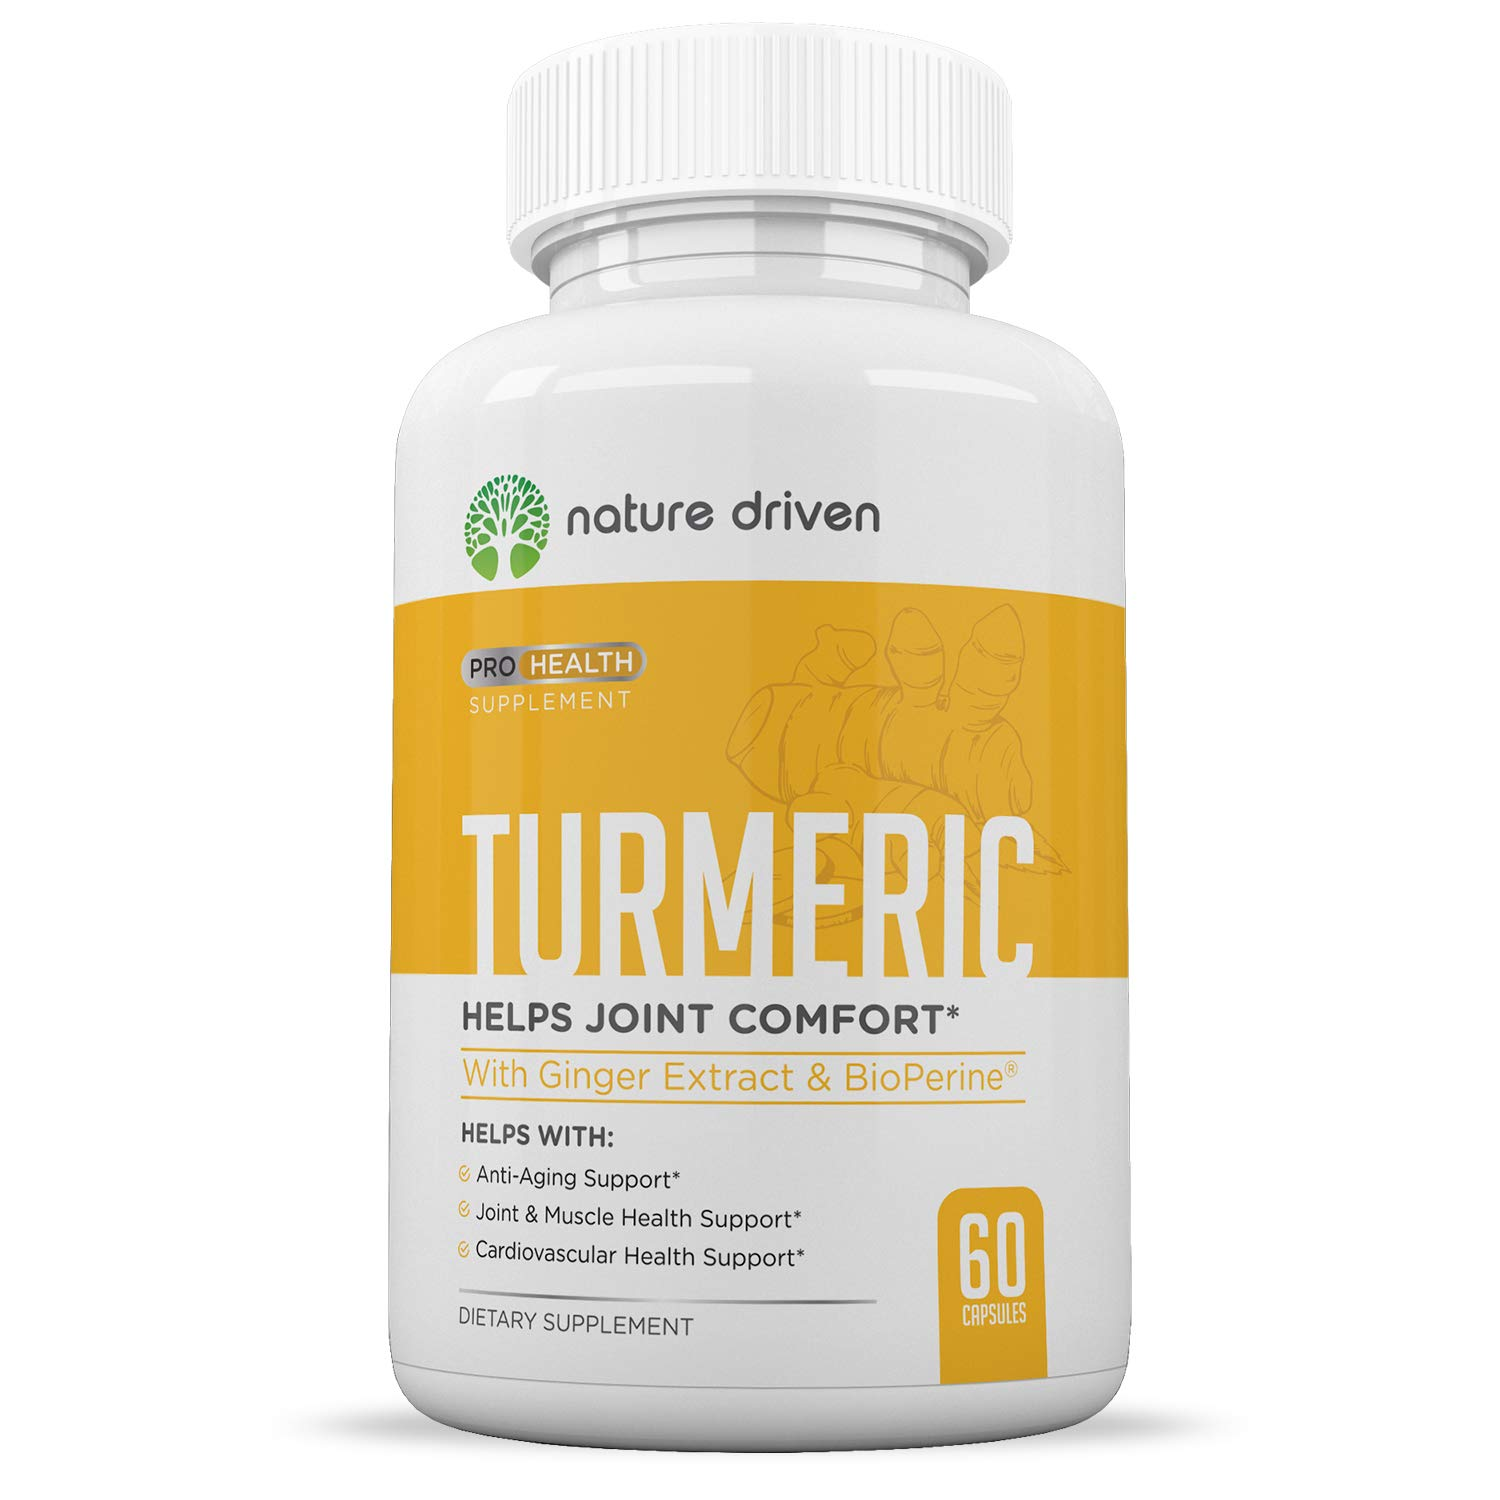 Nature Driven Turmeric Curcumin Supplement with Bioperine and Ginger - 95% Curcuminoids - Best Vegan Joint and Anti Inflammatory Relief - 1950mg per Dose - Veggie Caps 30 Day Supply by Nature Driven